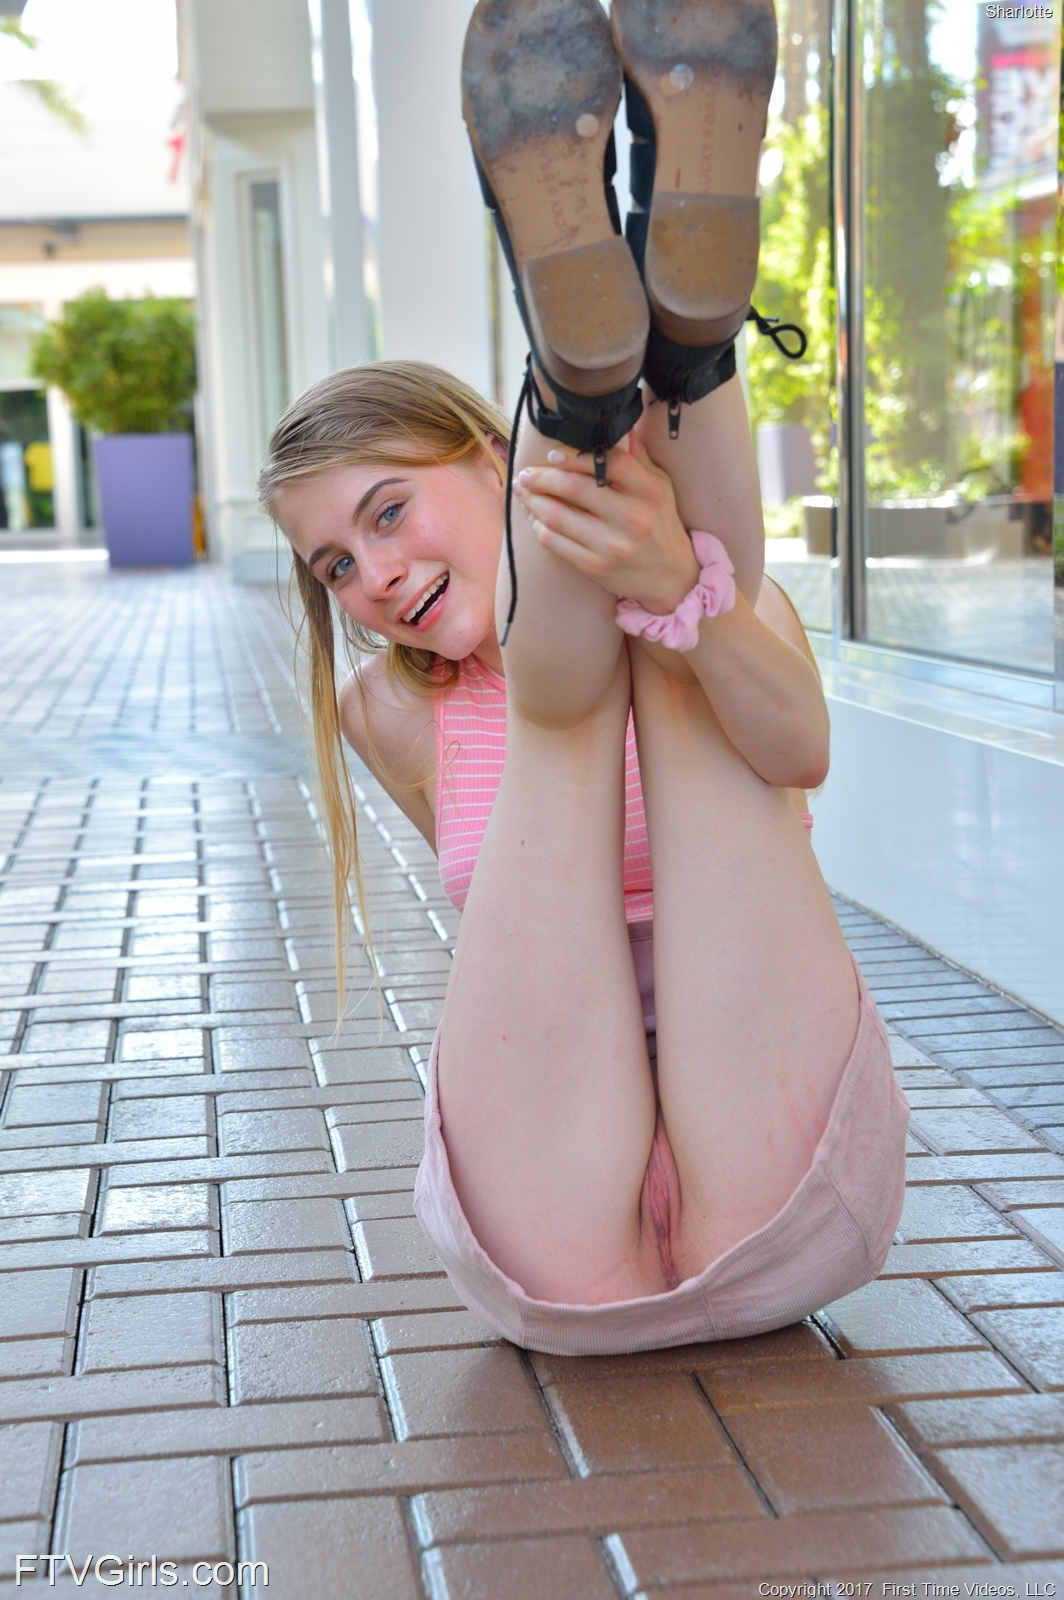 a frisky college girls flashing her pussy in the shoppingmall #5